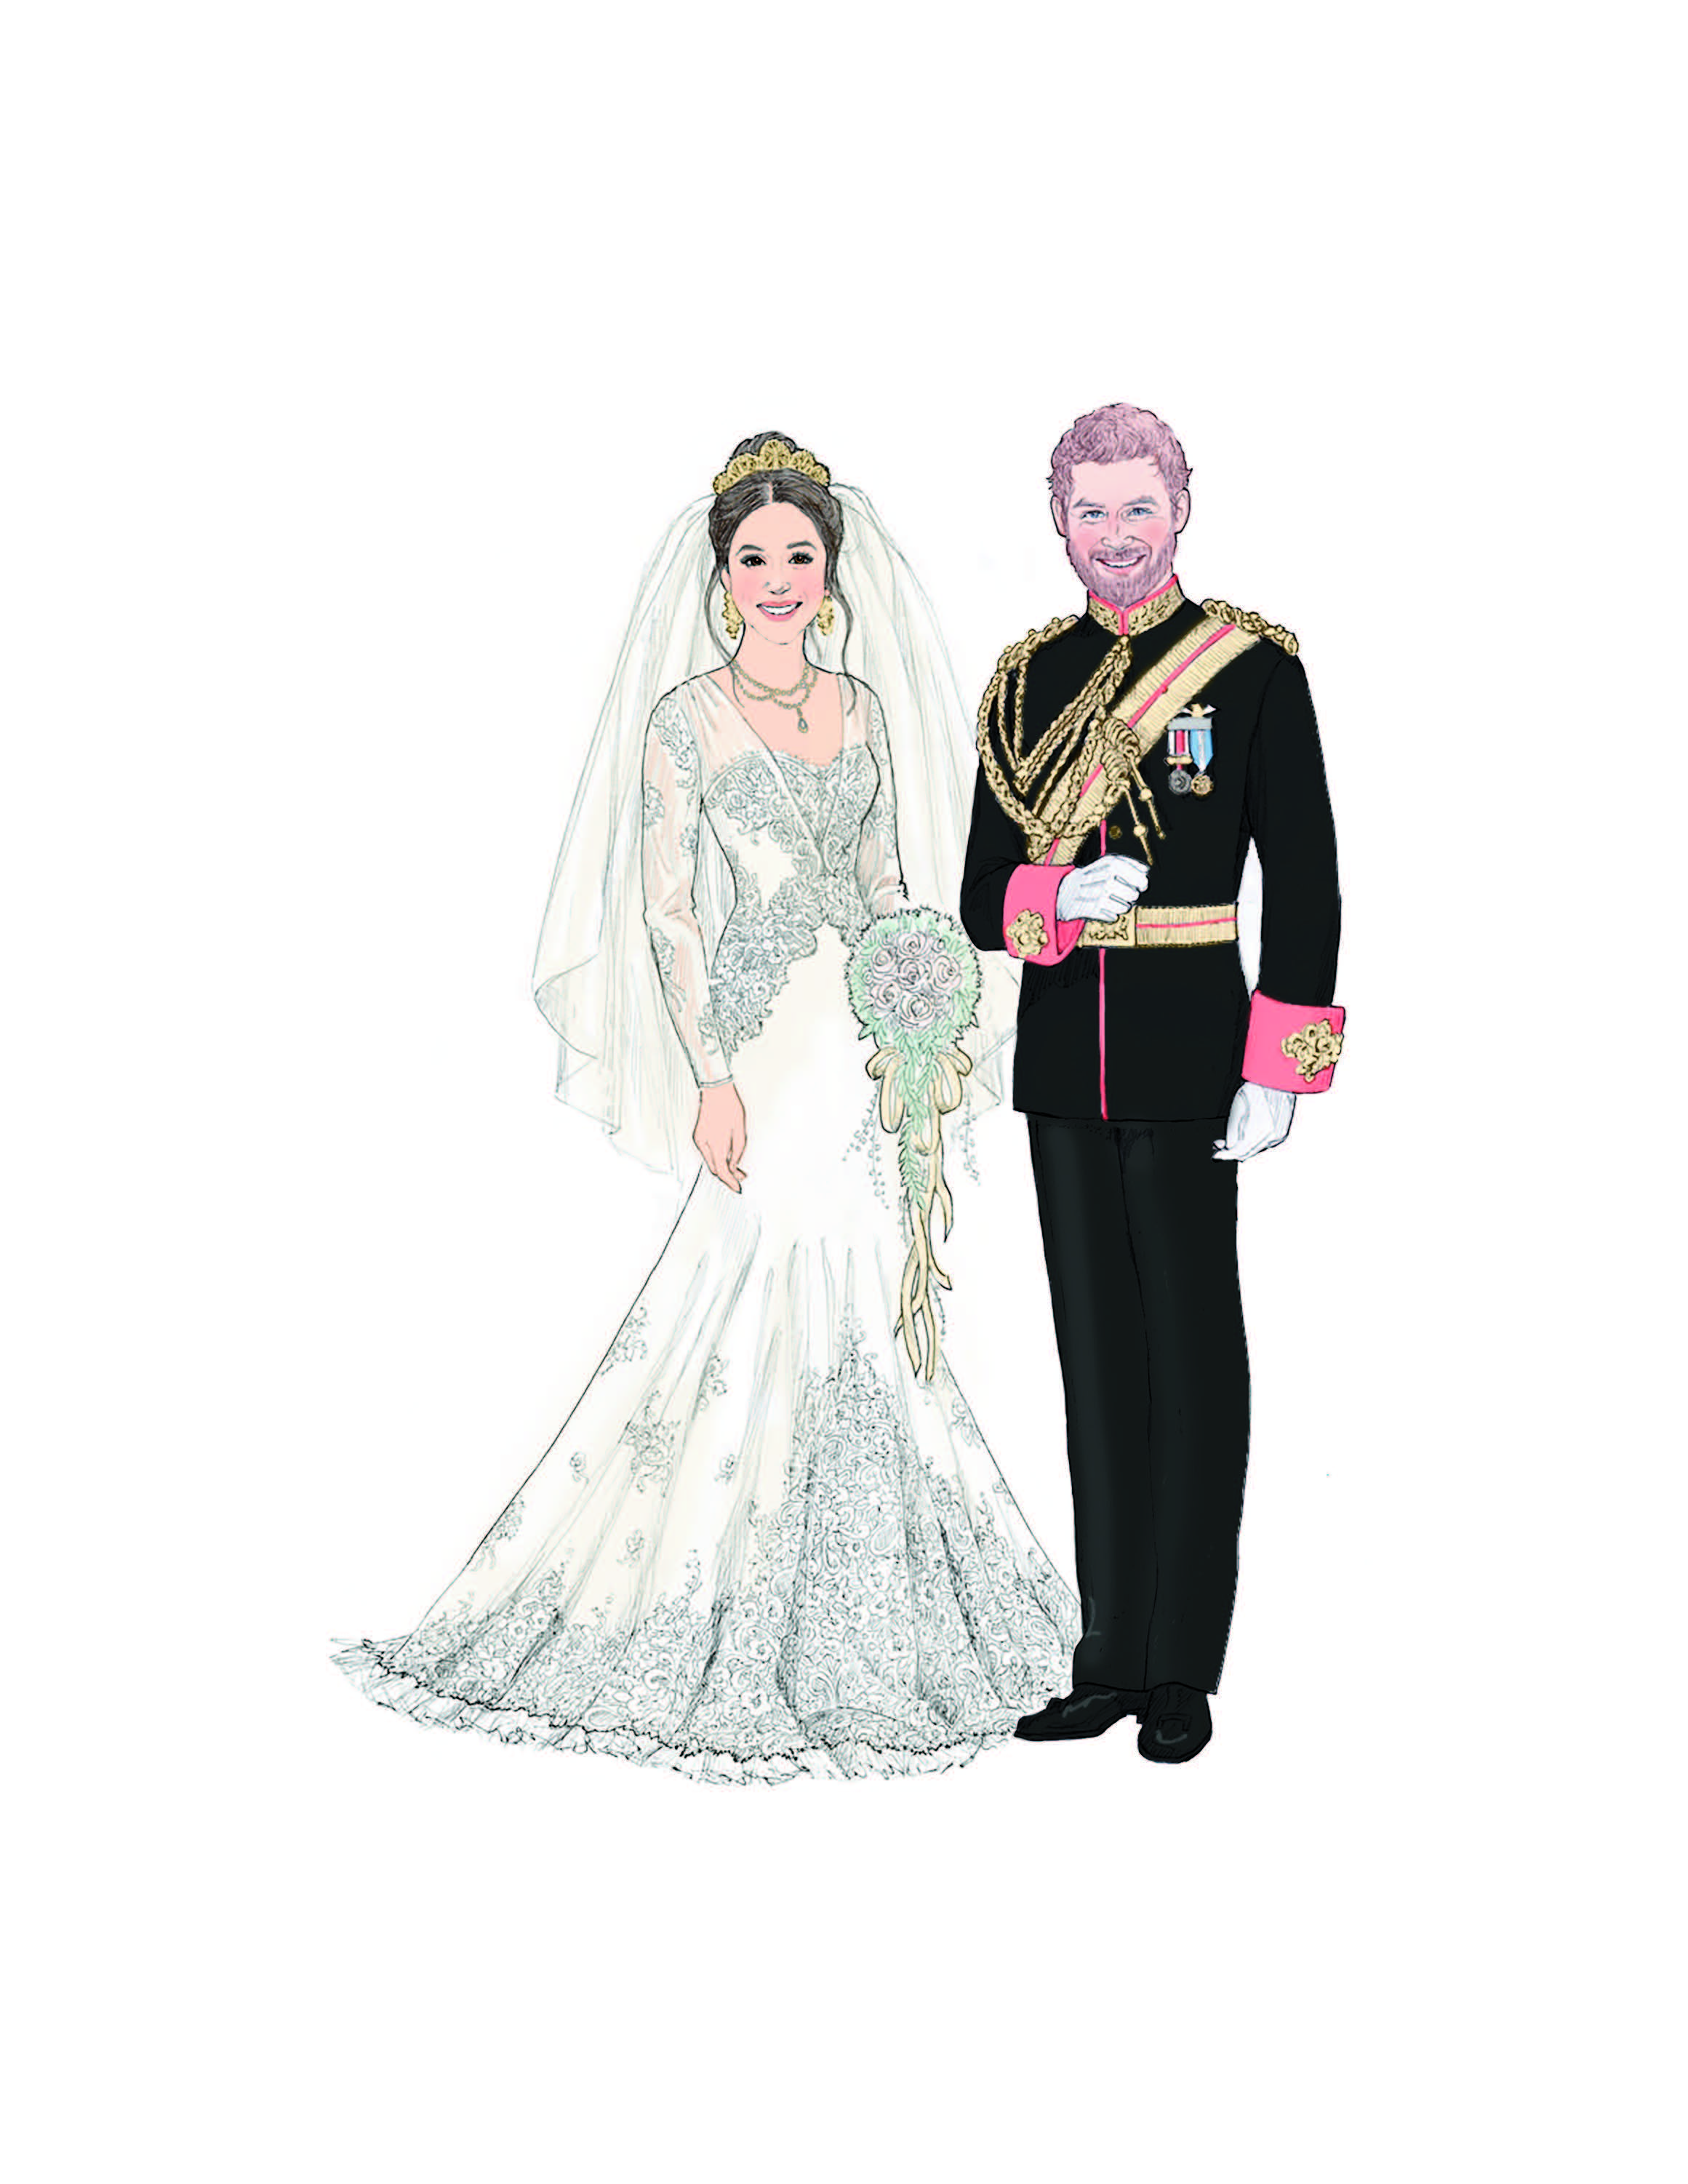 Meghan and Harry illustration by Ashton-Drake